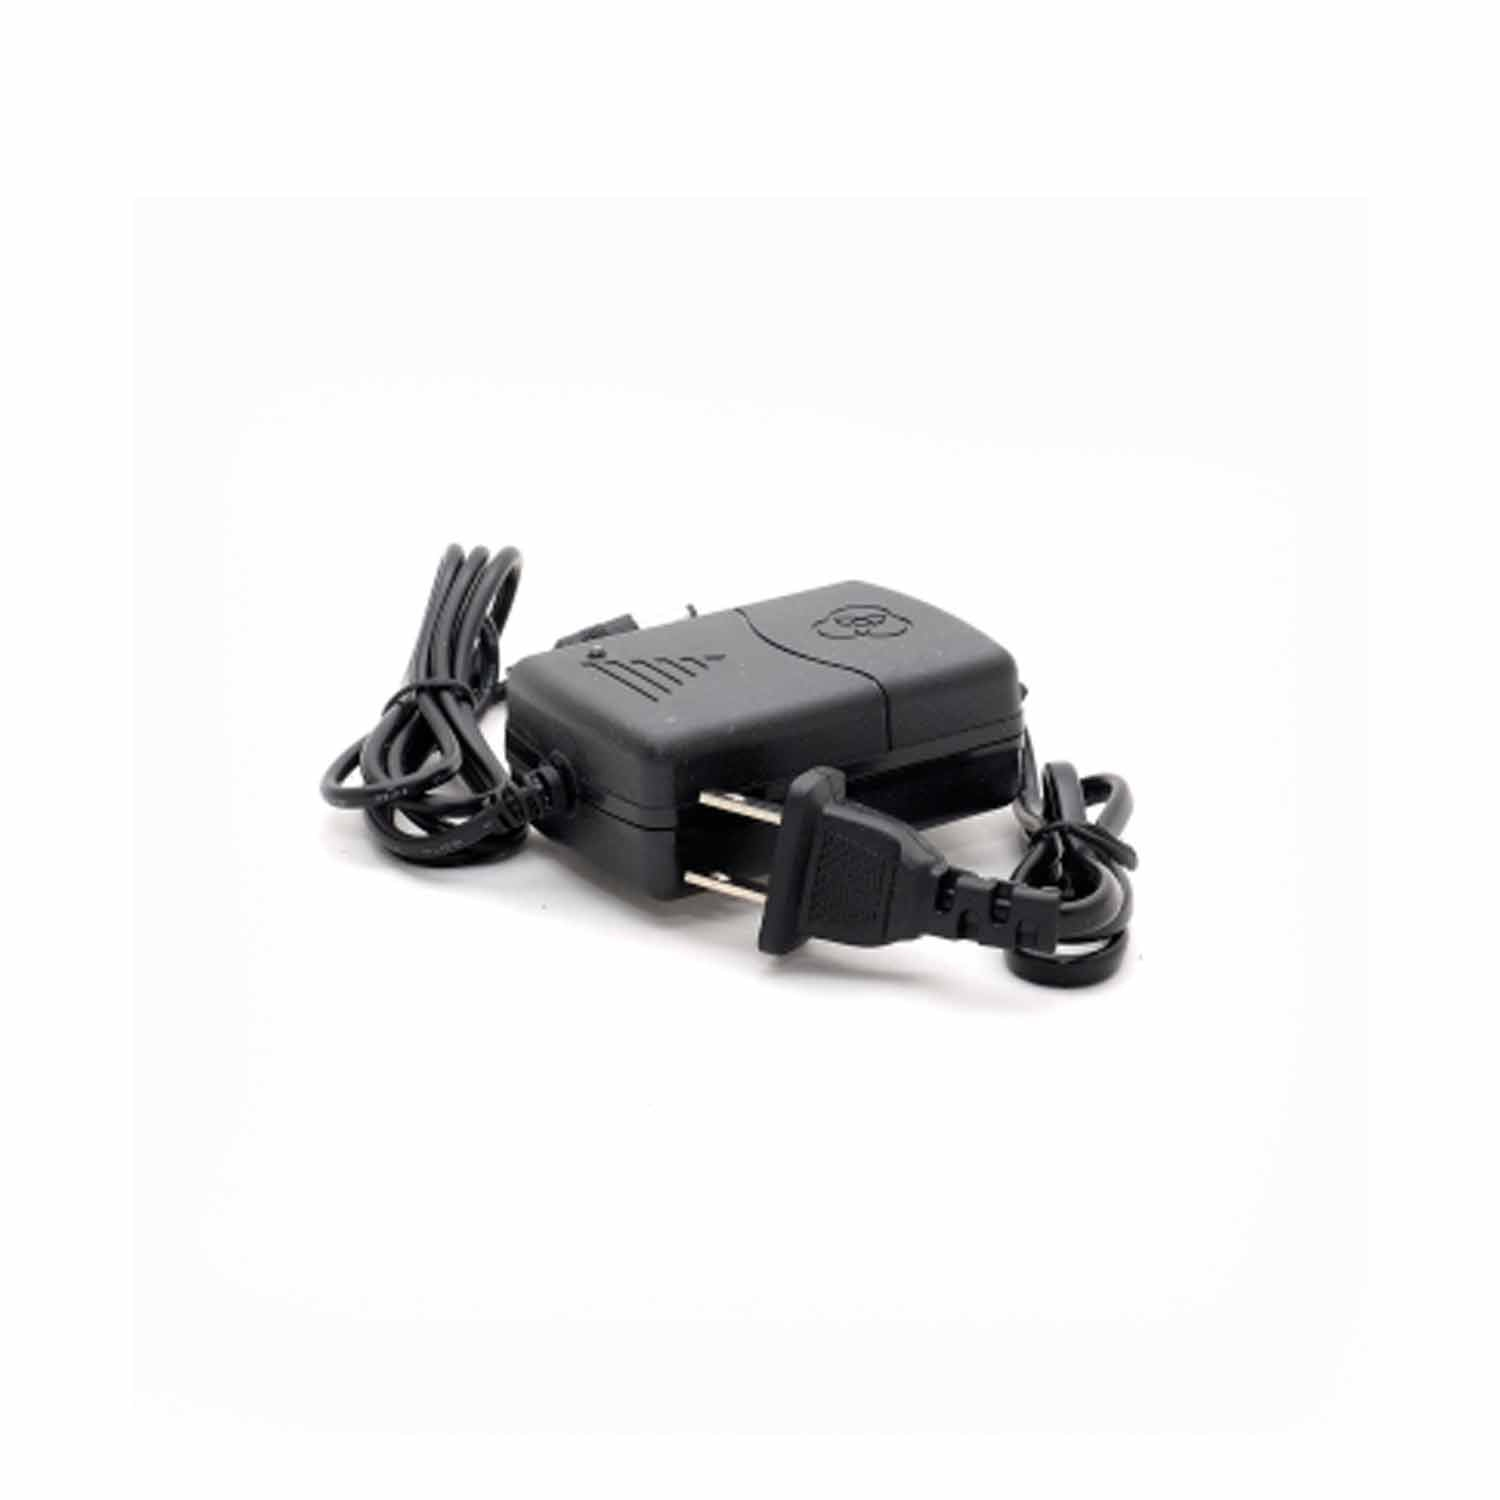 Intelligent Power Adaptor 1A